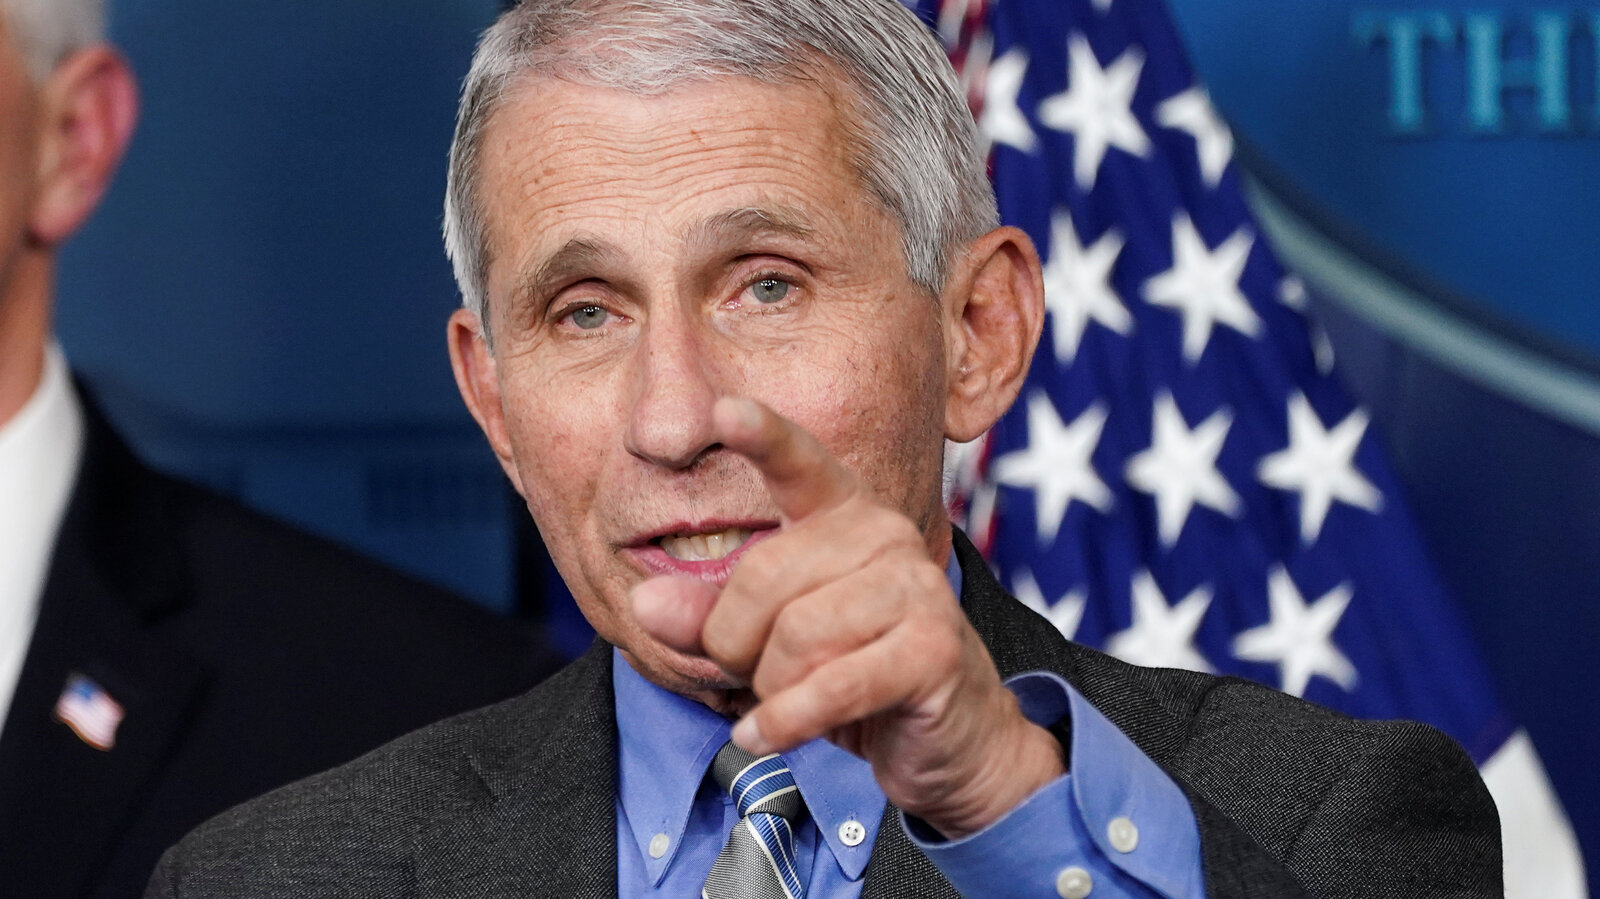 Fauci Says U.S. Coronavirus Deaths May Be 'More Like 60,000'; Antibody Tests On Way